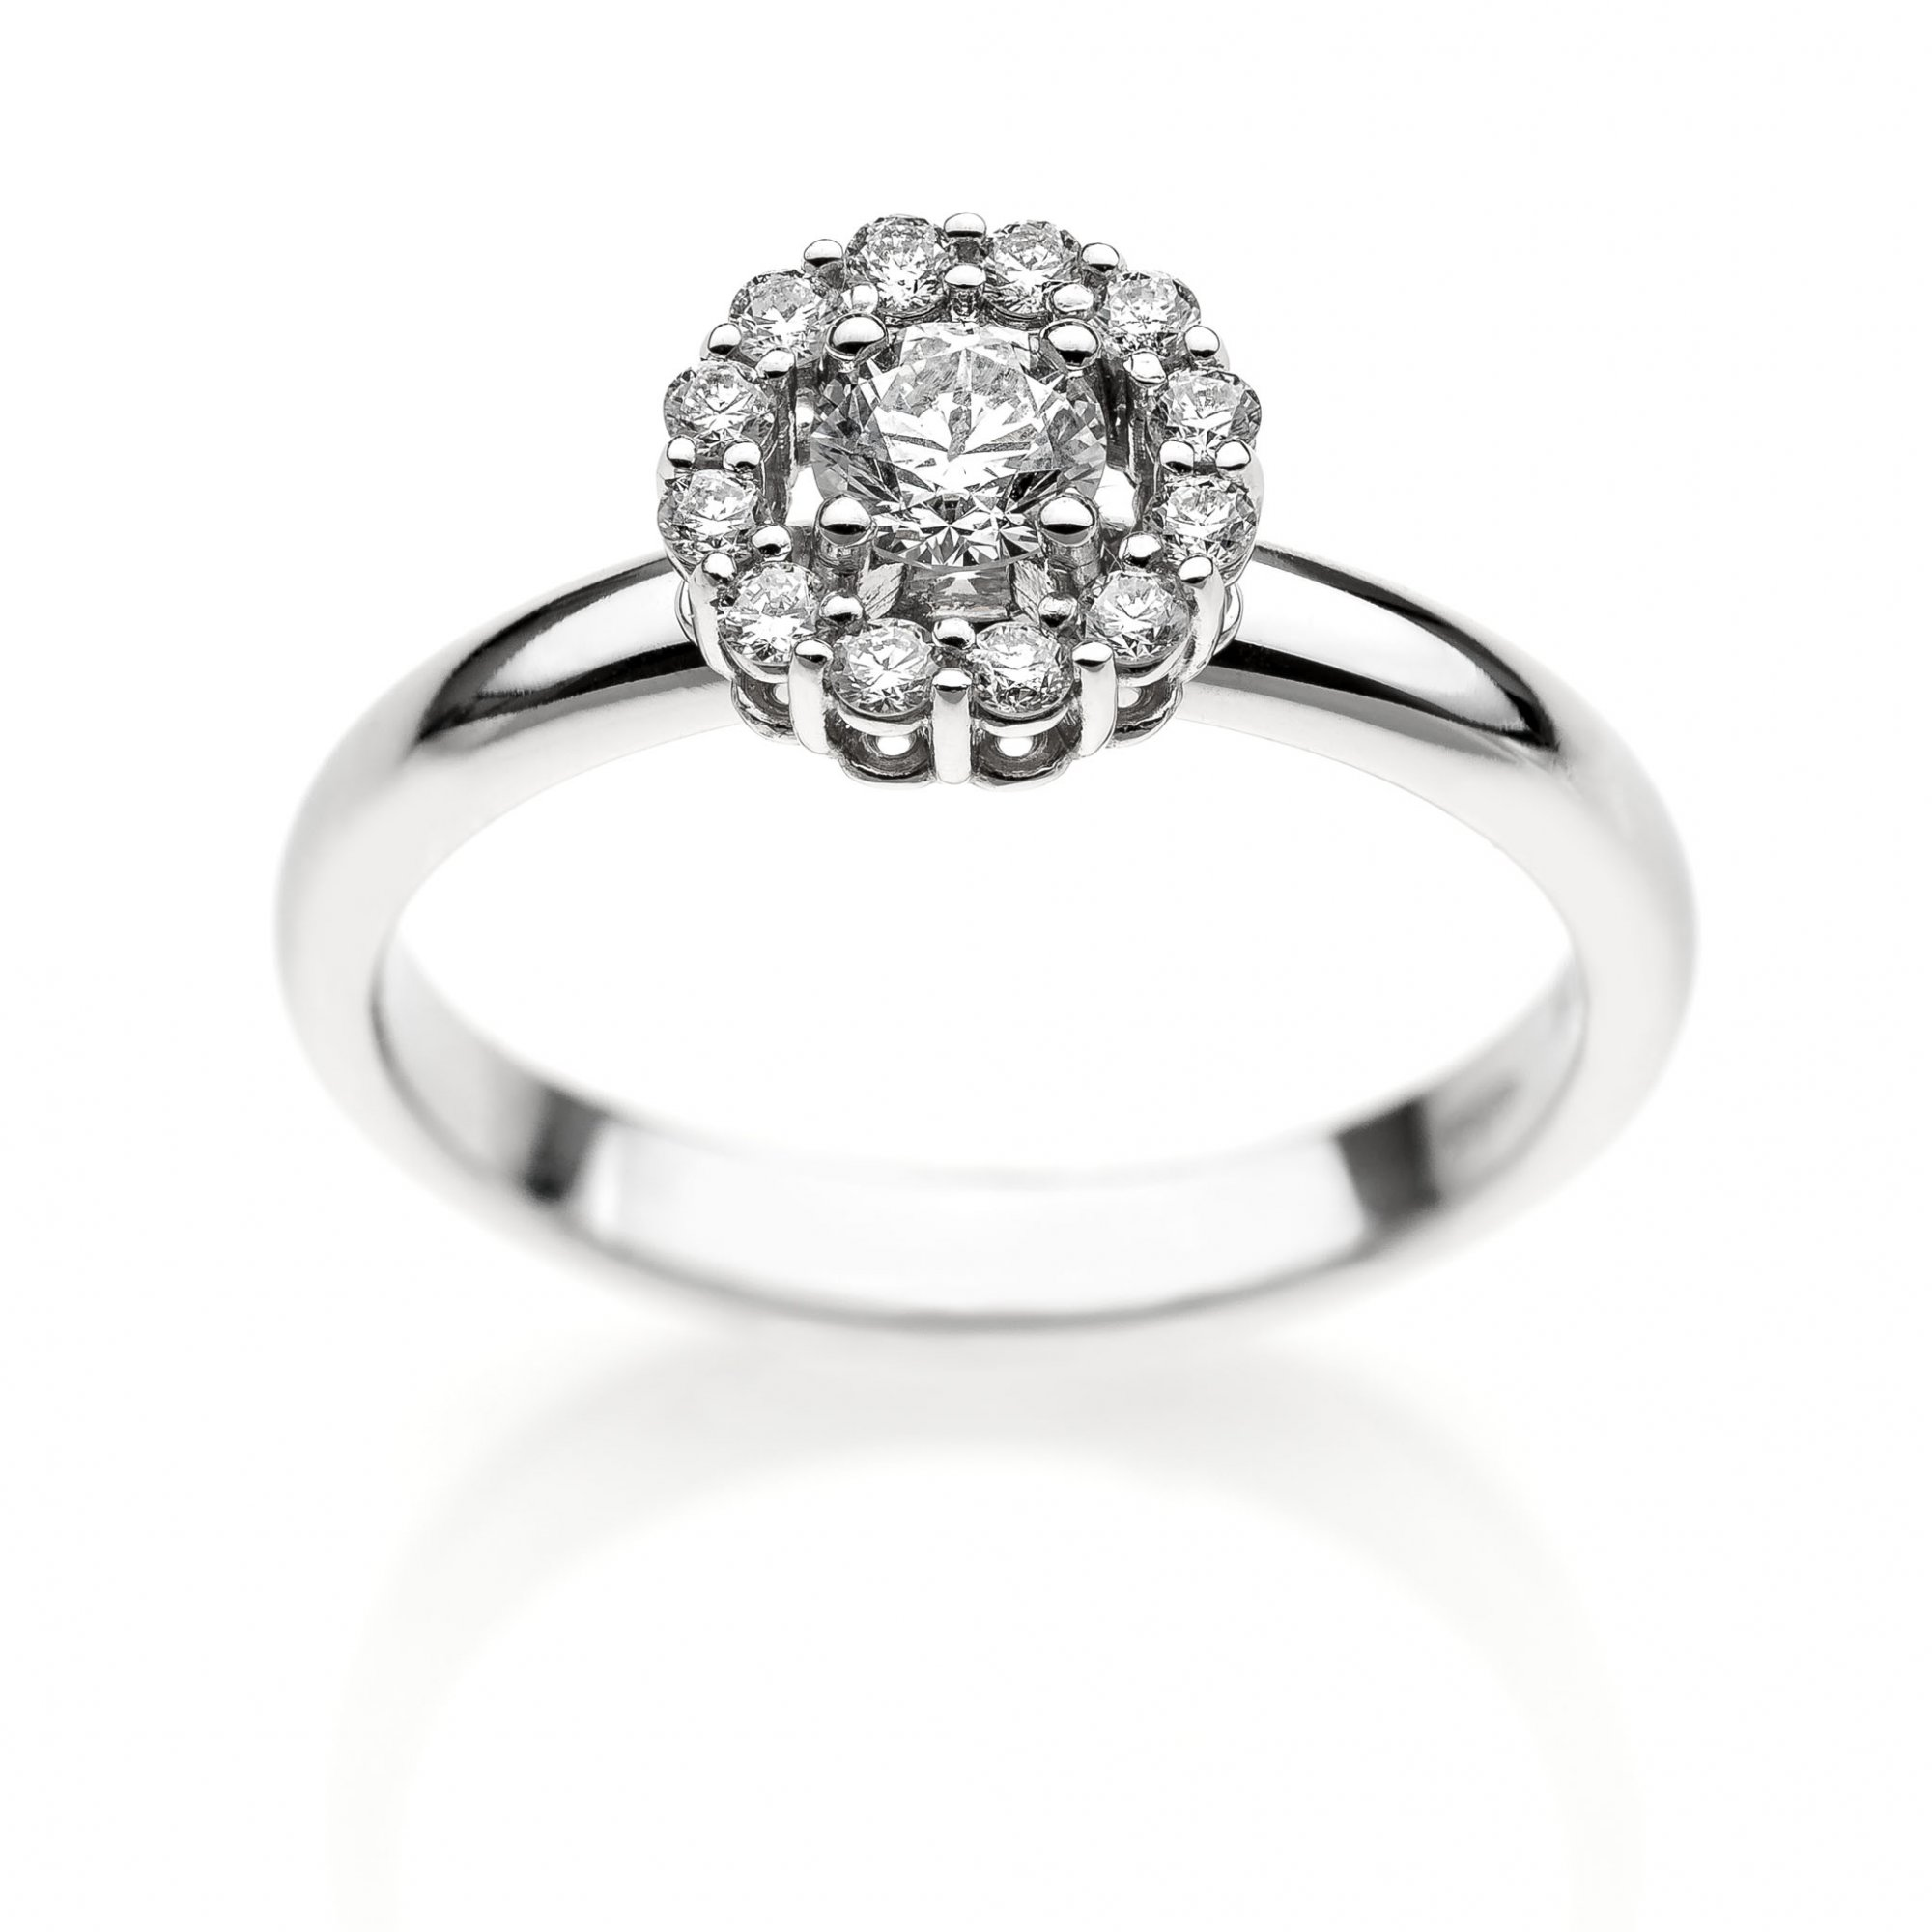 18 KT white gold ring with round brilliant cut diamond ct.0.70 and round brilliant cut diamonds ct.0.15 VVS G color